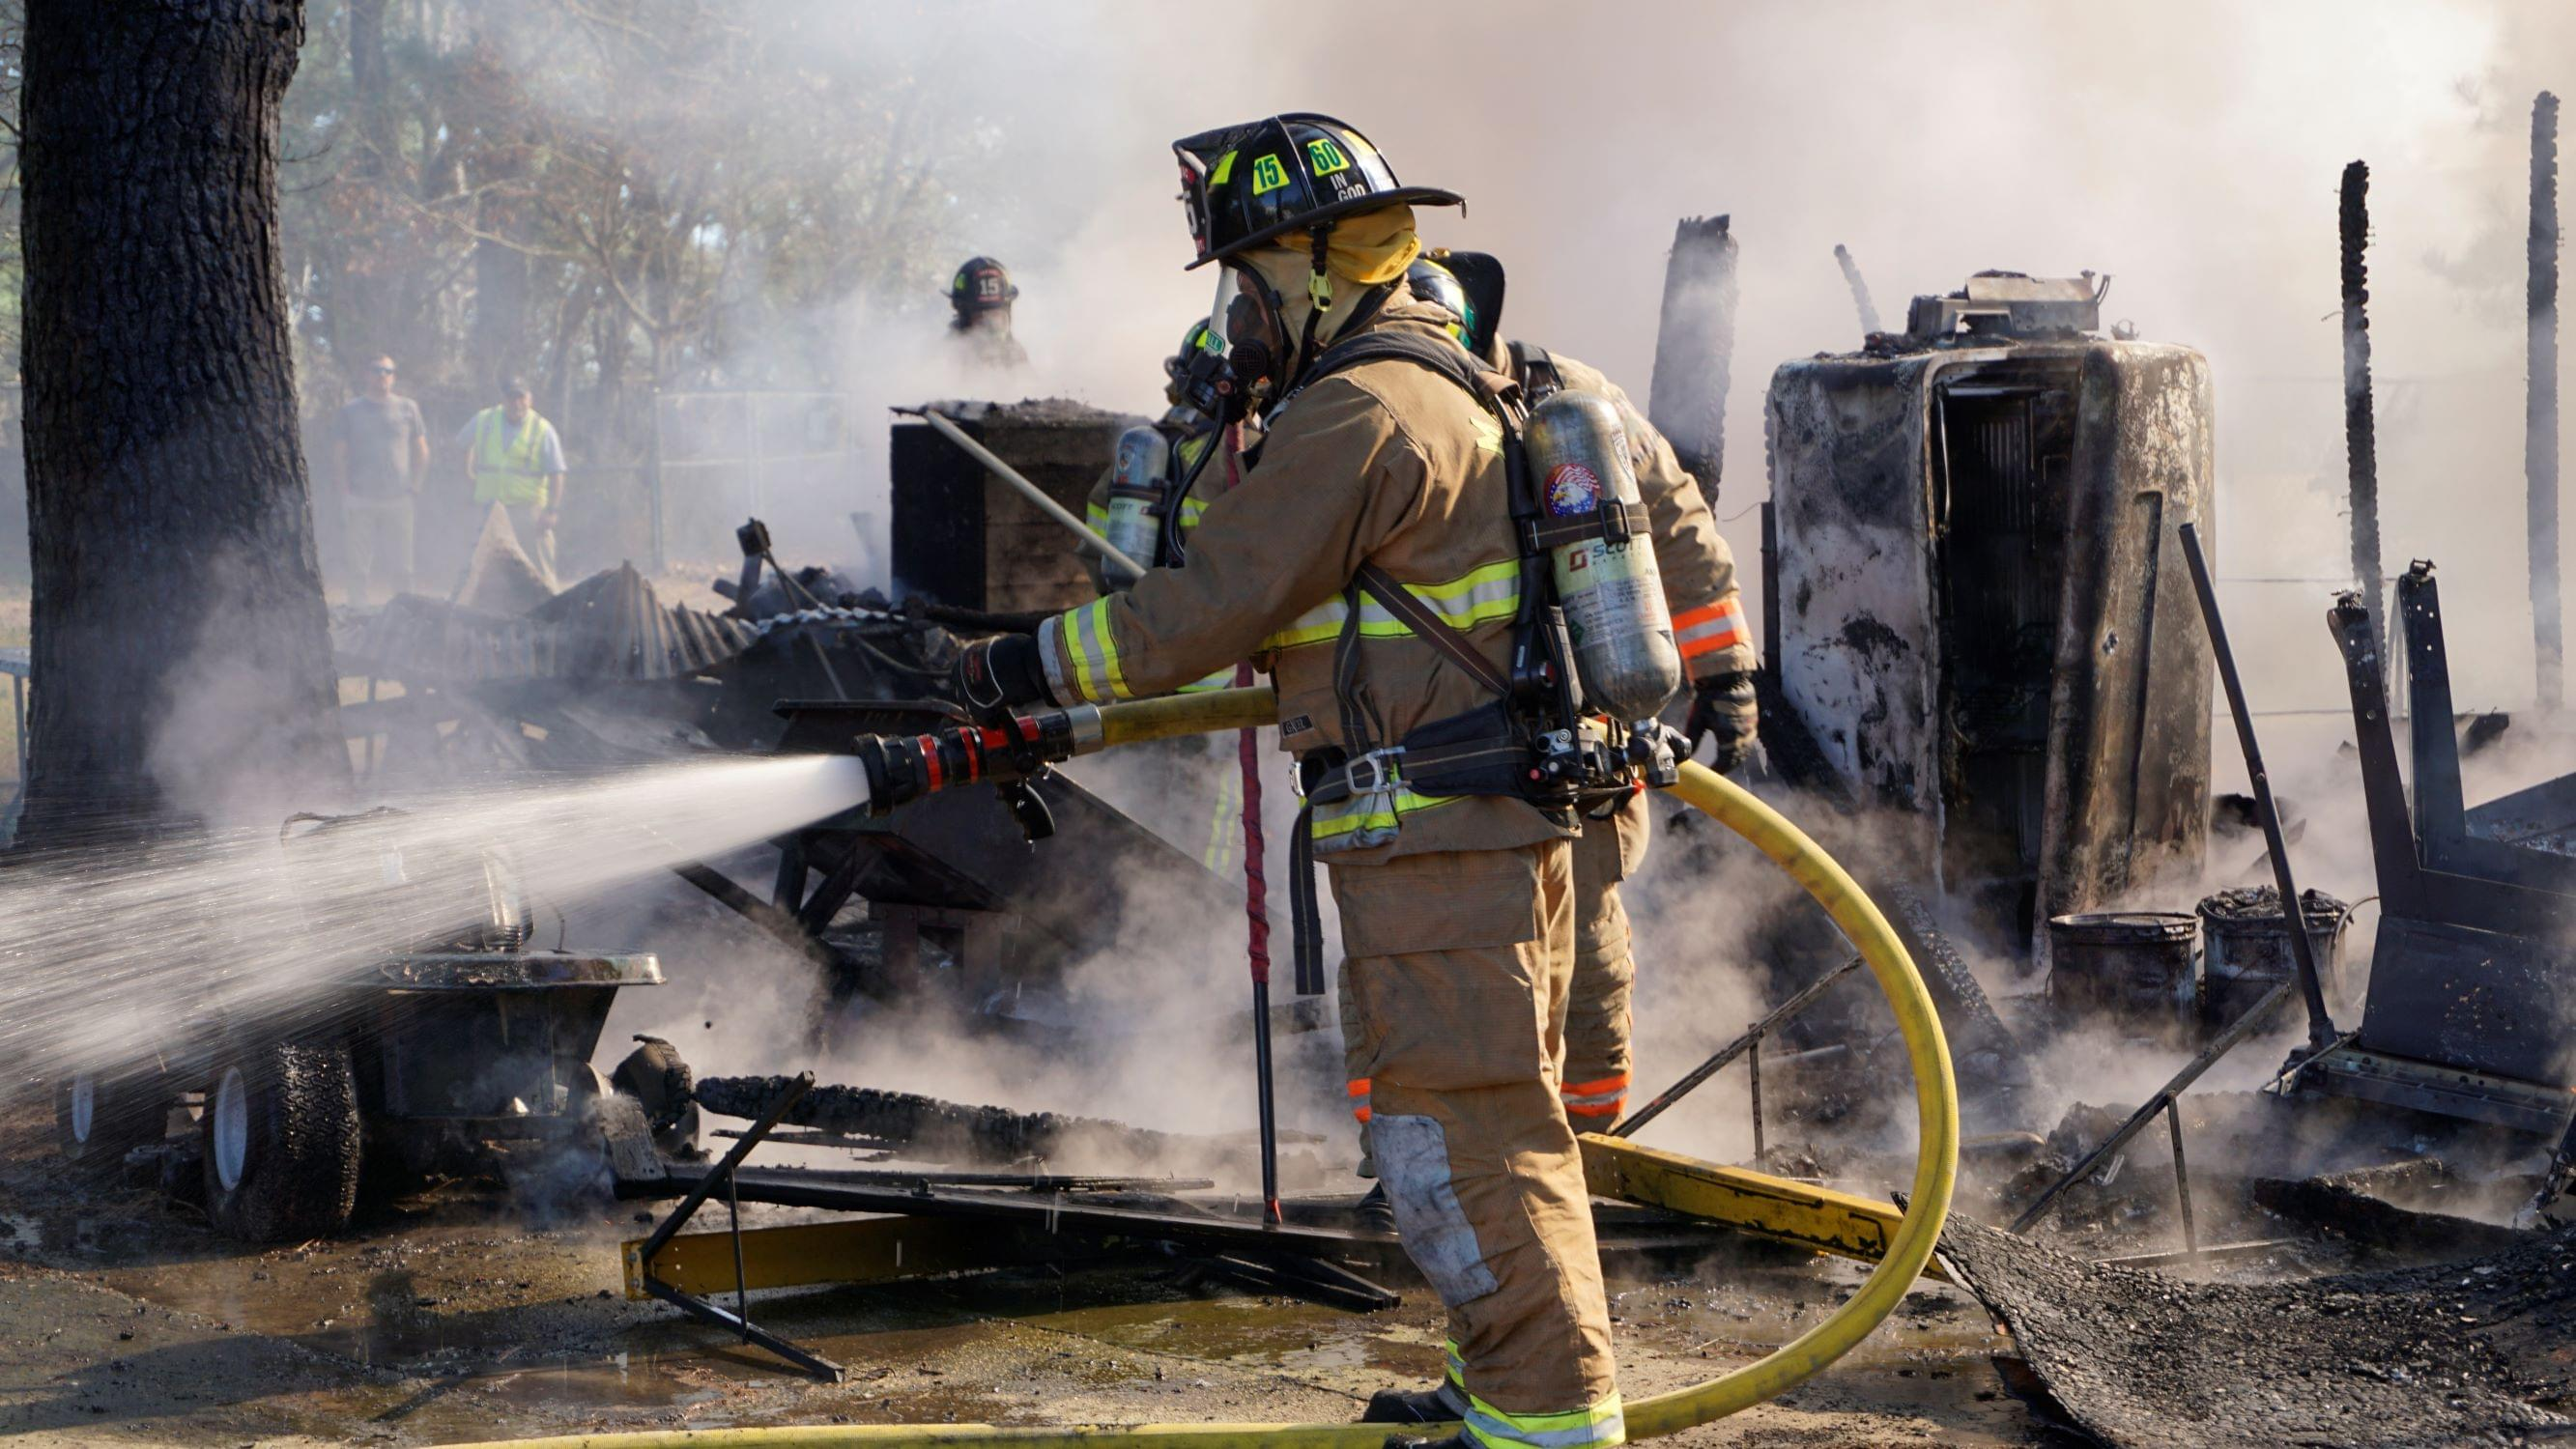 Firefighters Save Nearby Structure From Blaze (PHOTO GALLERY)